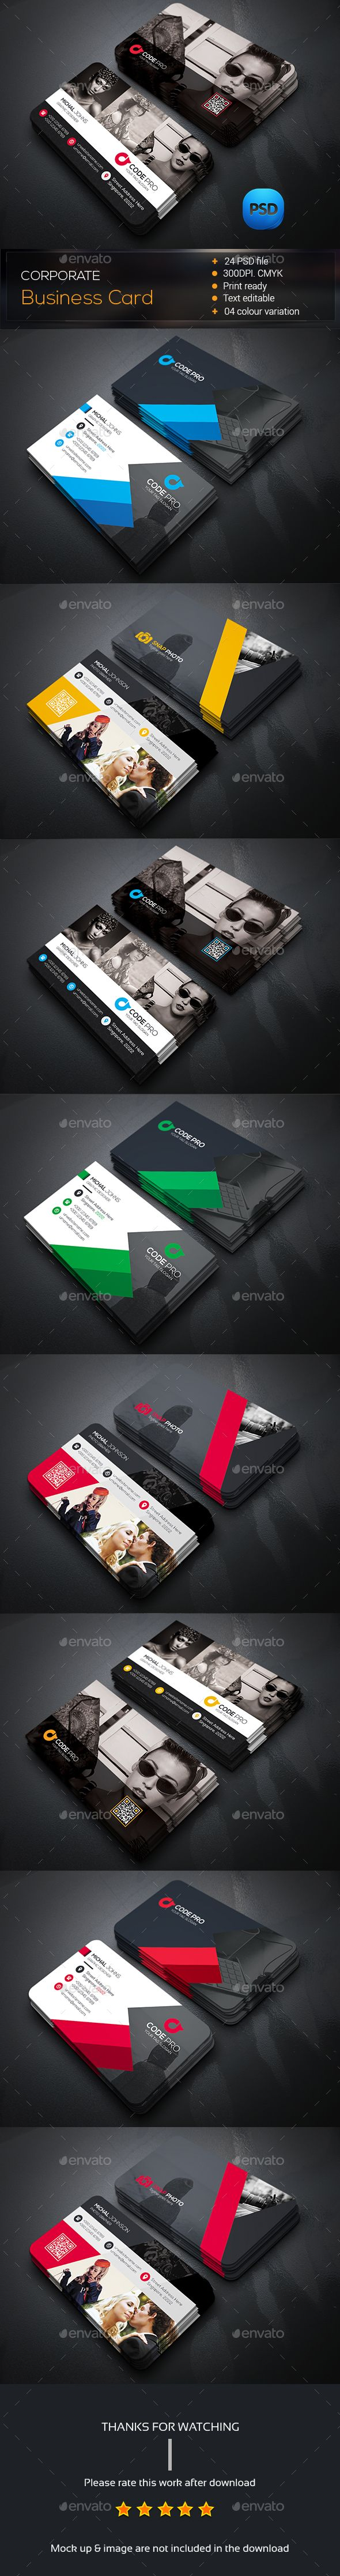 Photography Business Card Template Bundle PSD. Download here: http://graphicriver.net/item/photography-business-card-bundle/14633679?ref=ksioks